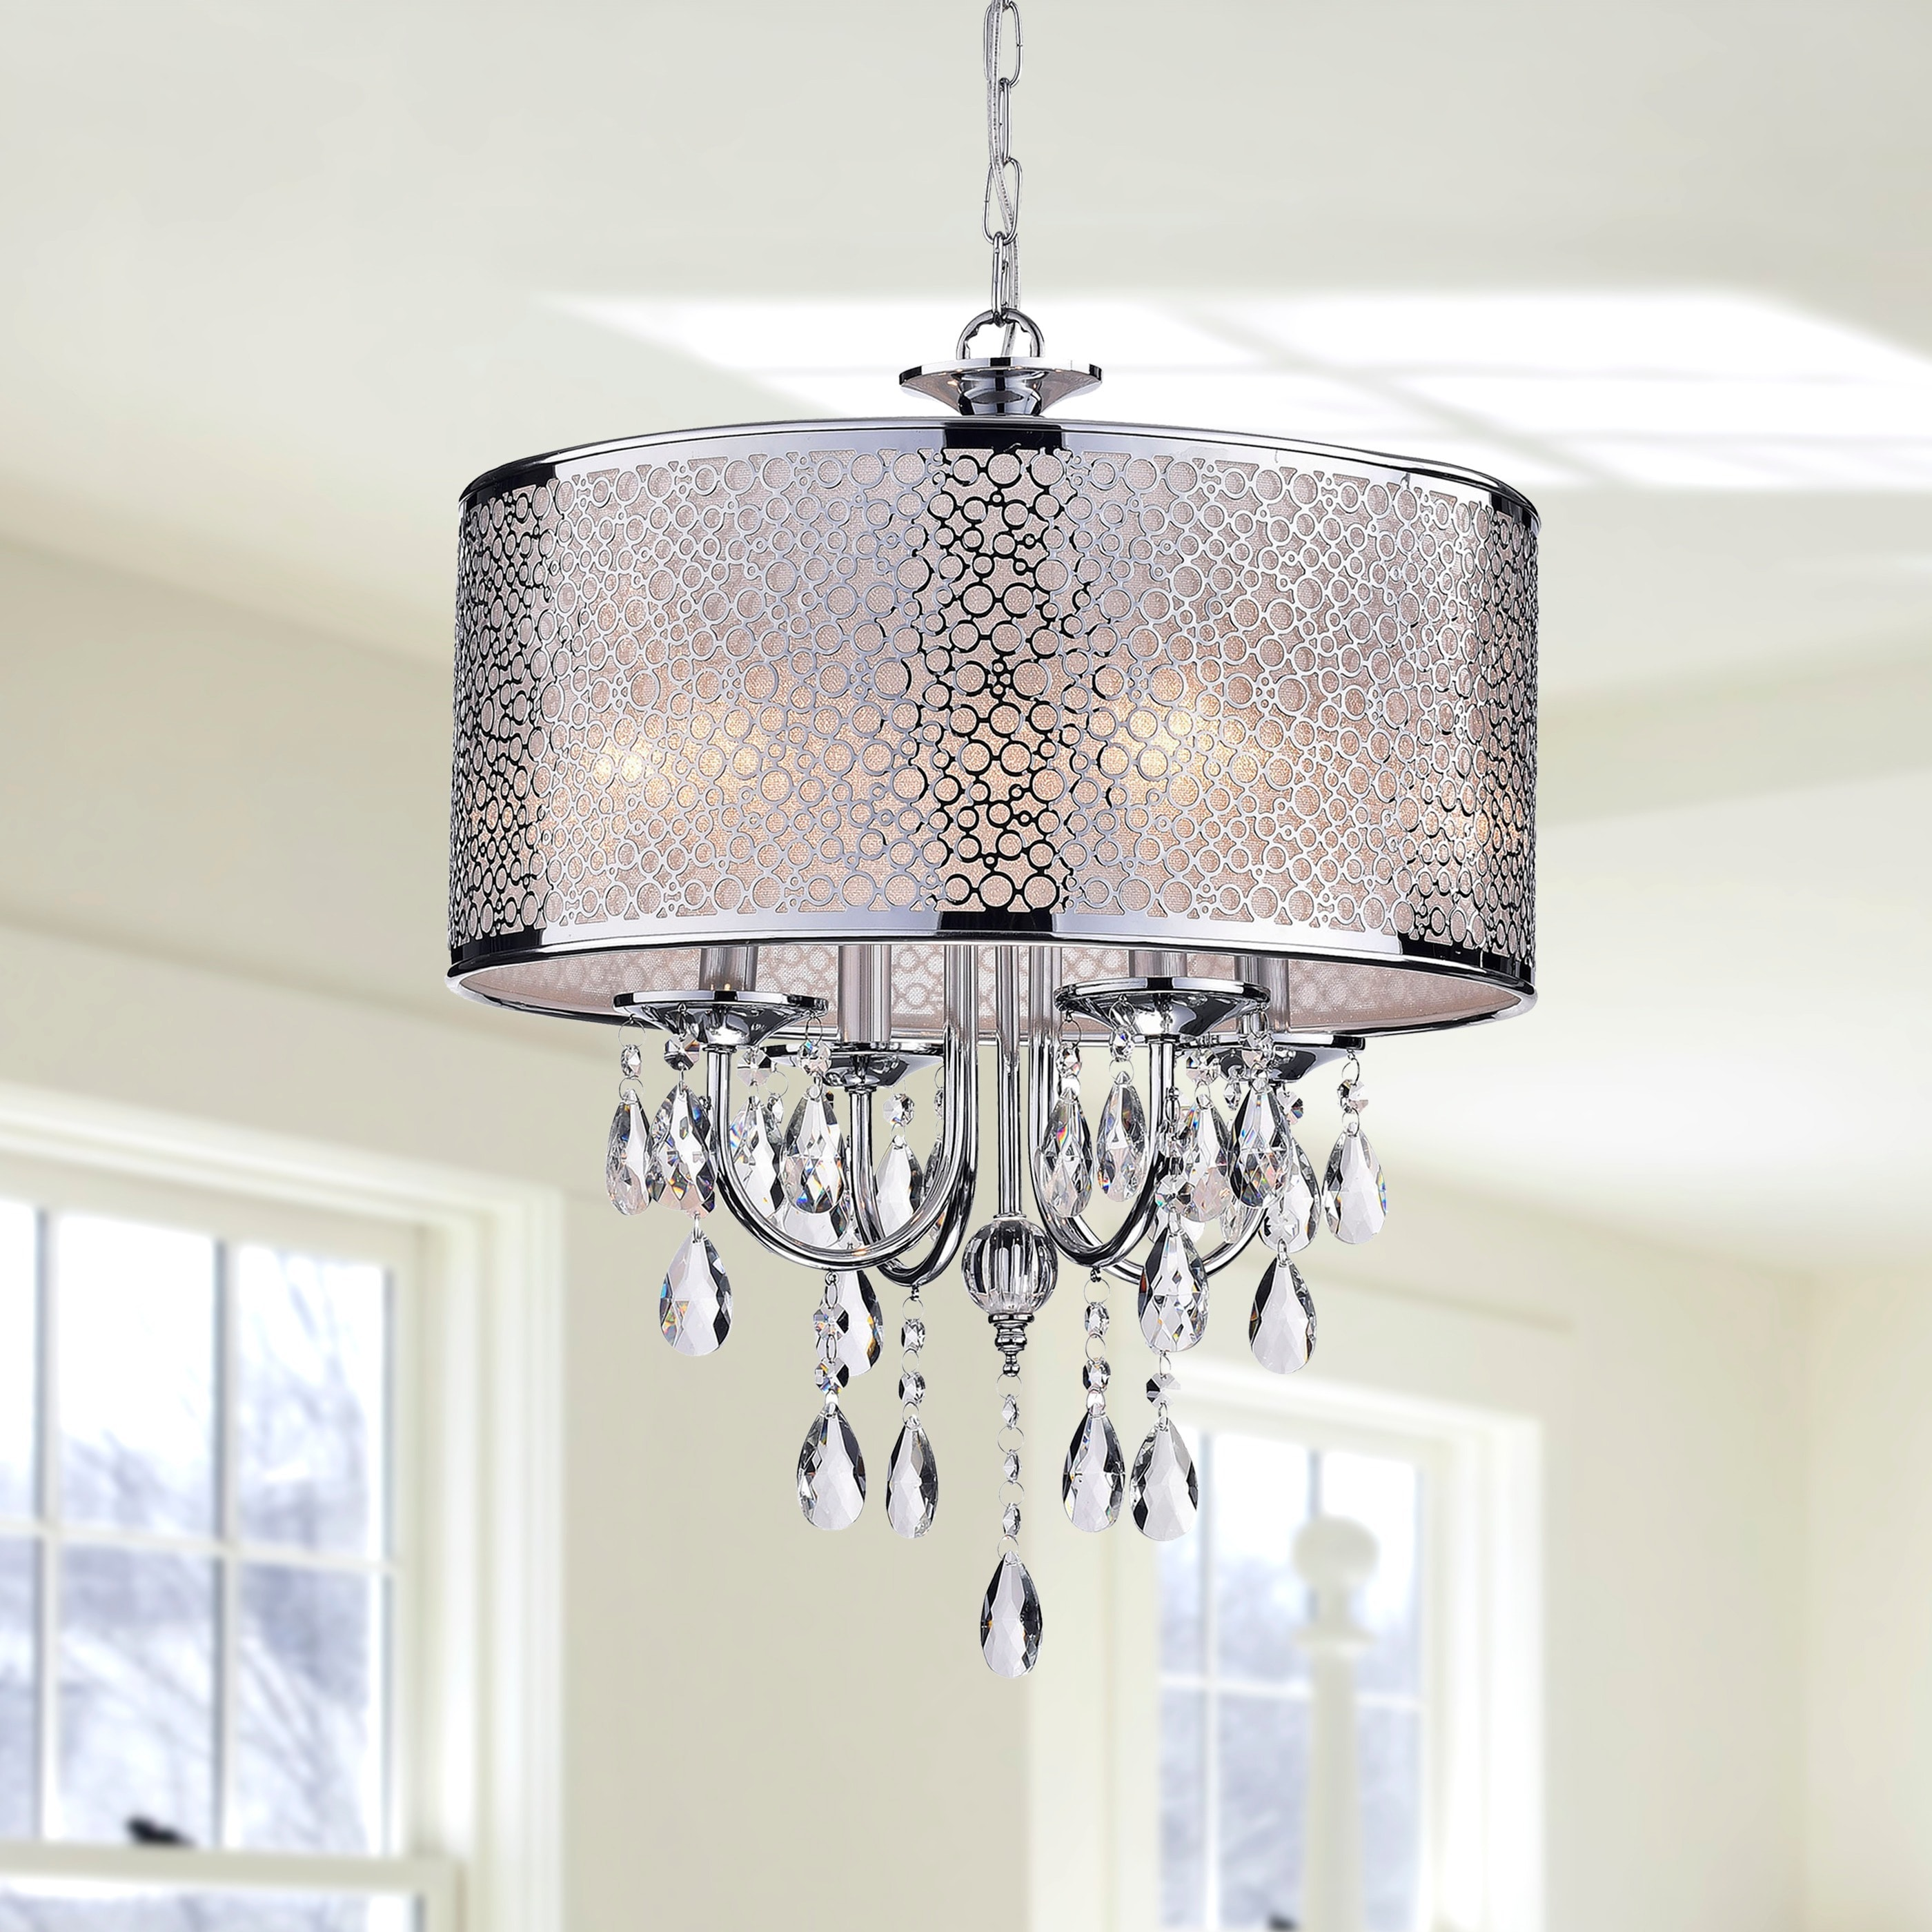 Indoor 4 light chrome crystal white shades chandelier free indoor 4 light chrome crystal white shades chandelier free shipping today overstock 12994824 arubaitofo Image collections